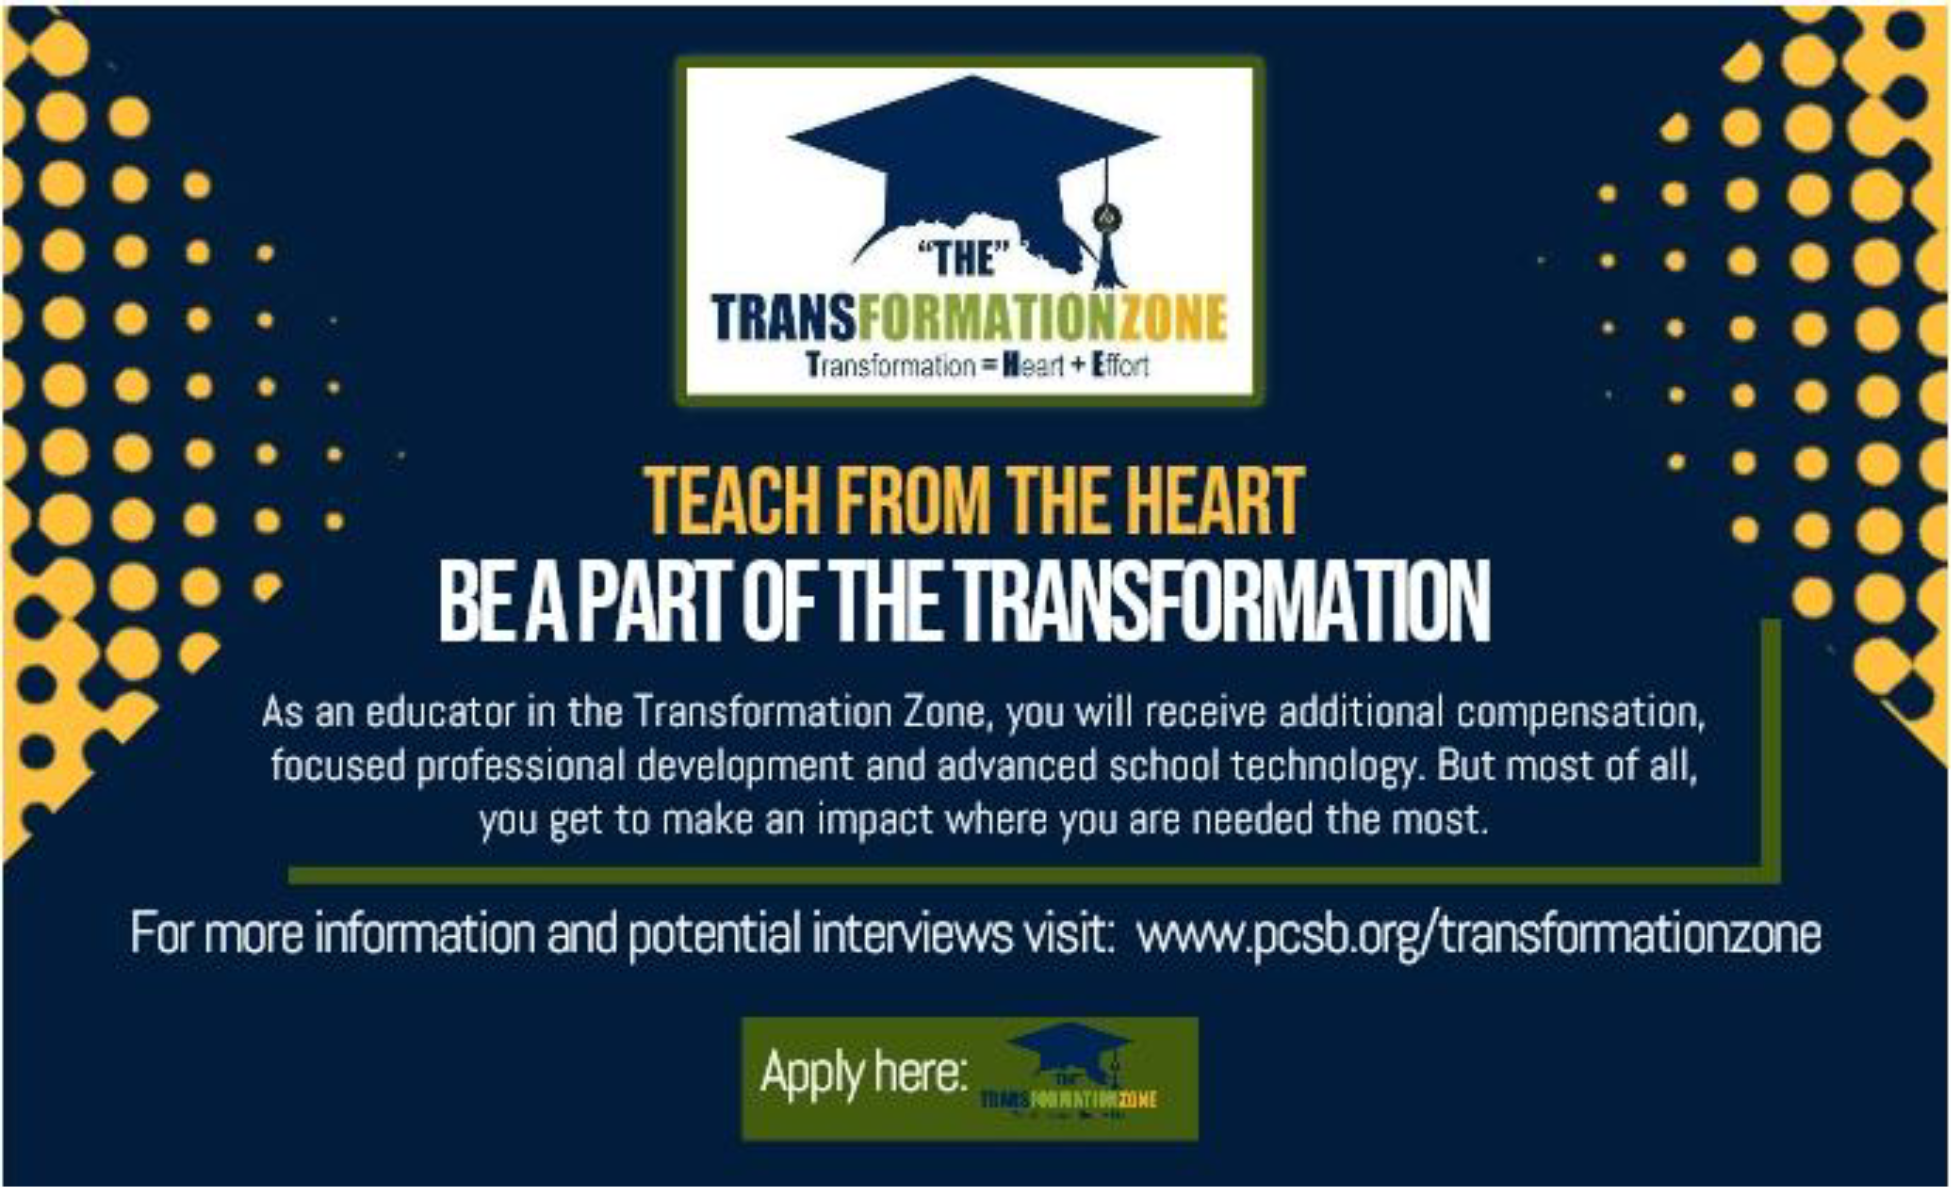 Be a part of the transformation - For more information and potential interviews  - Apply Now